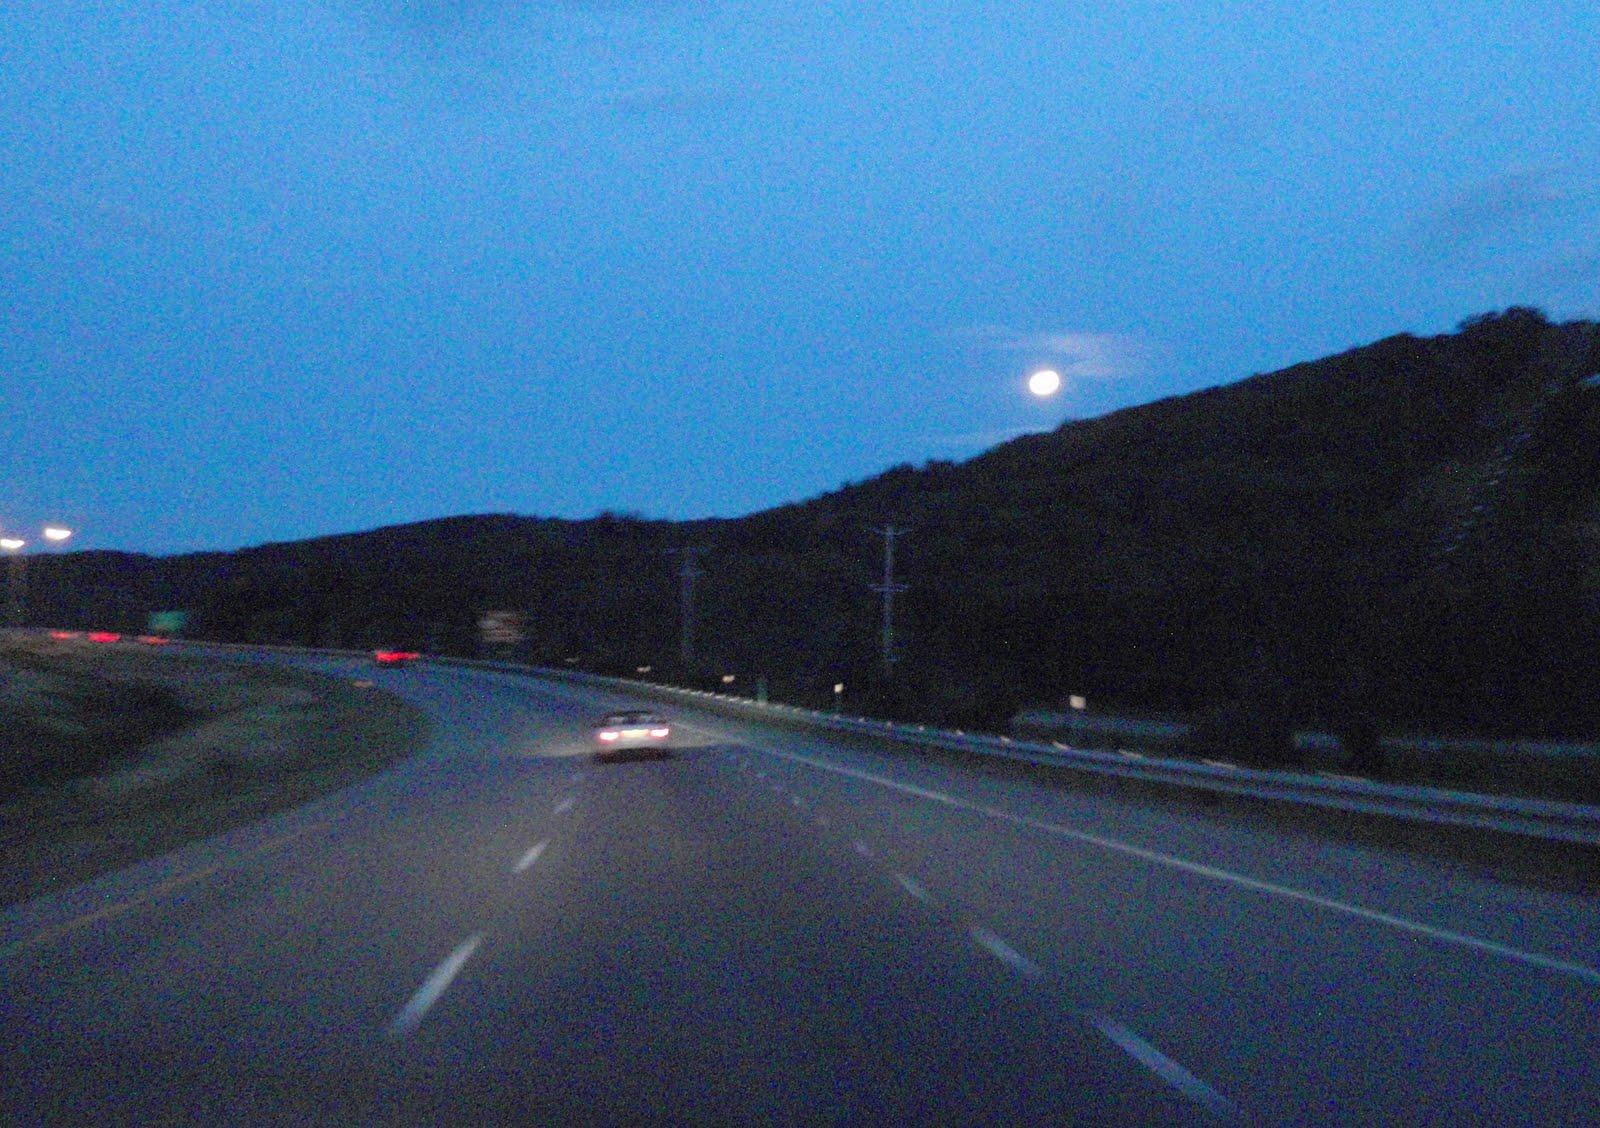 Moon is coming up on the way back to camp.